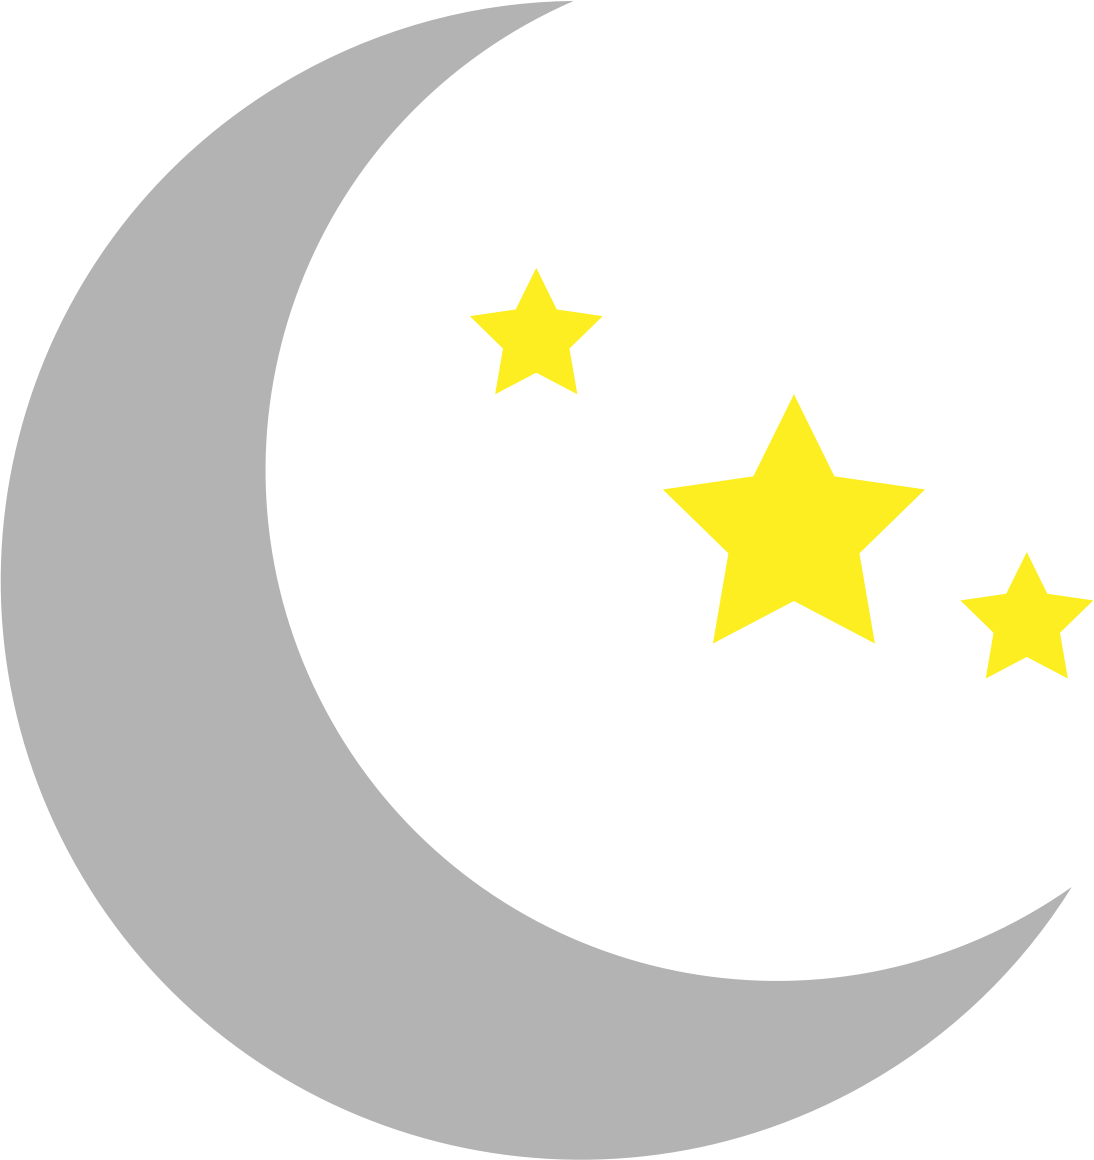 Crescent Moon And Star Flag